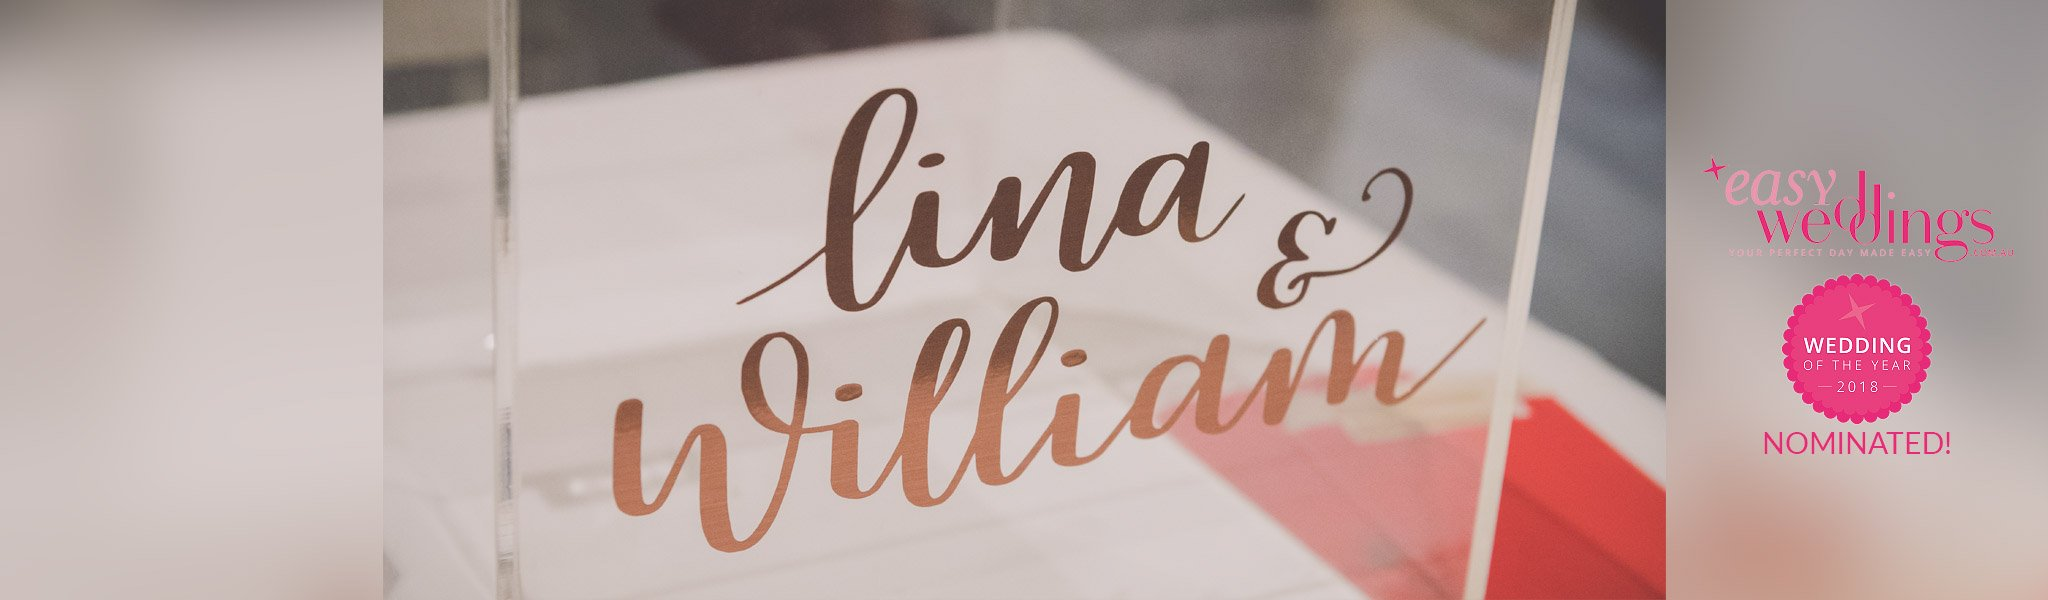 Lina and Will – Wedding of the Year Nominees!